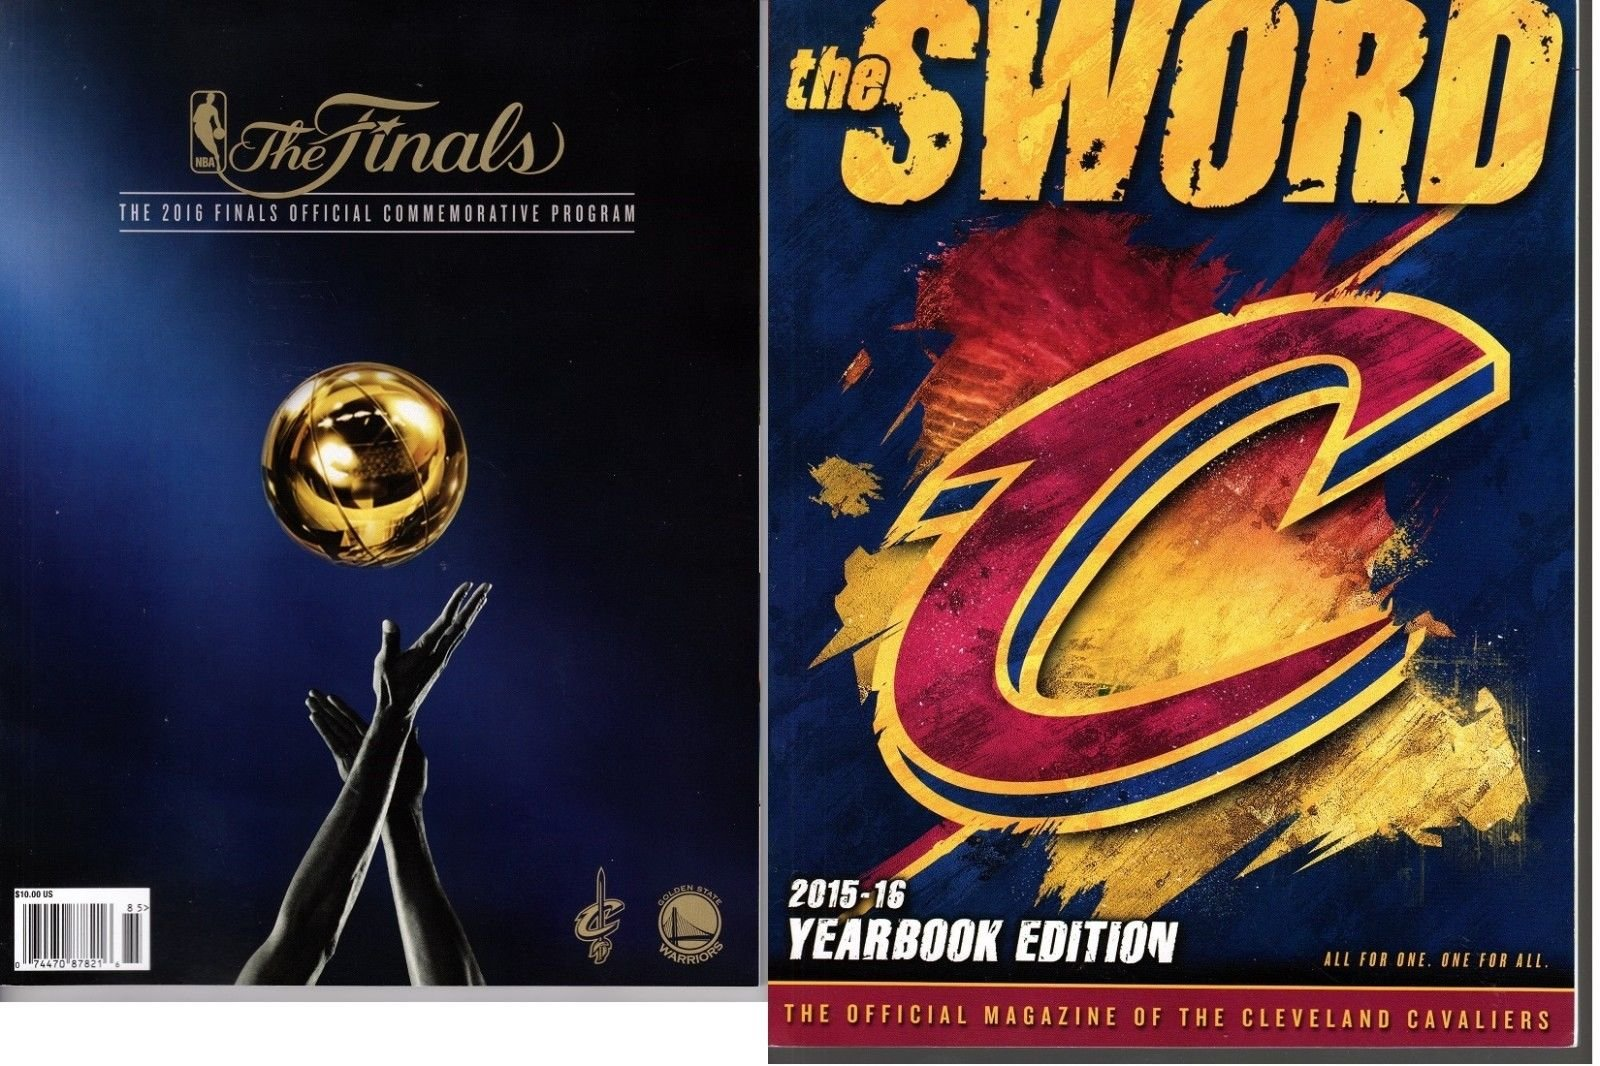 f105be0e8a4 2016 NBA FINALS CHAMPIONS CLEVELAND CAVALIERS CHAMPIONSHIP PROGRAM +  YEARBOOK SET Paperback – 2016